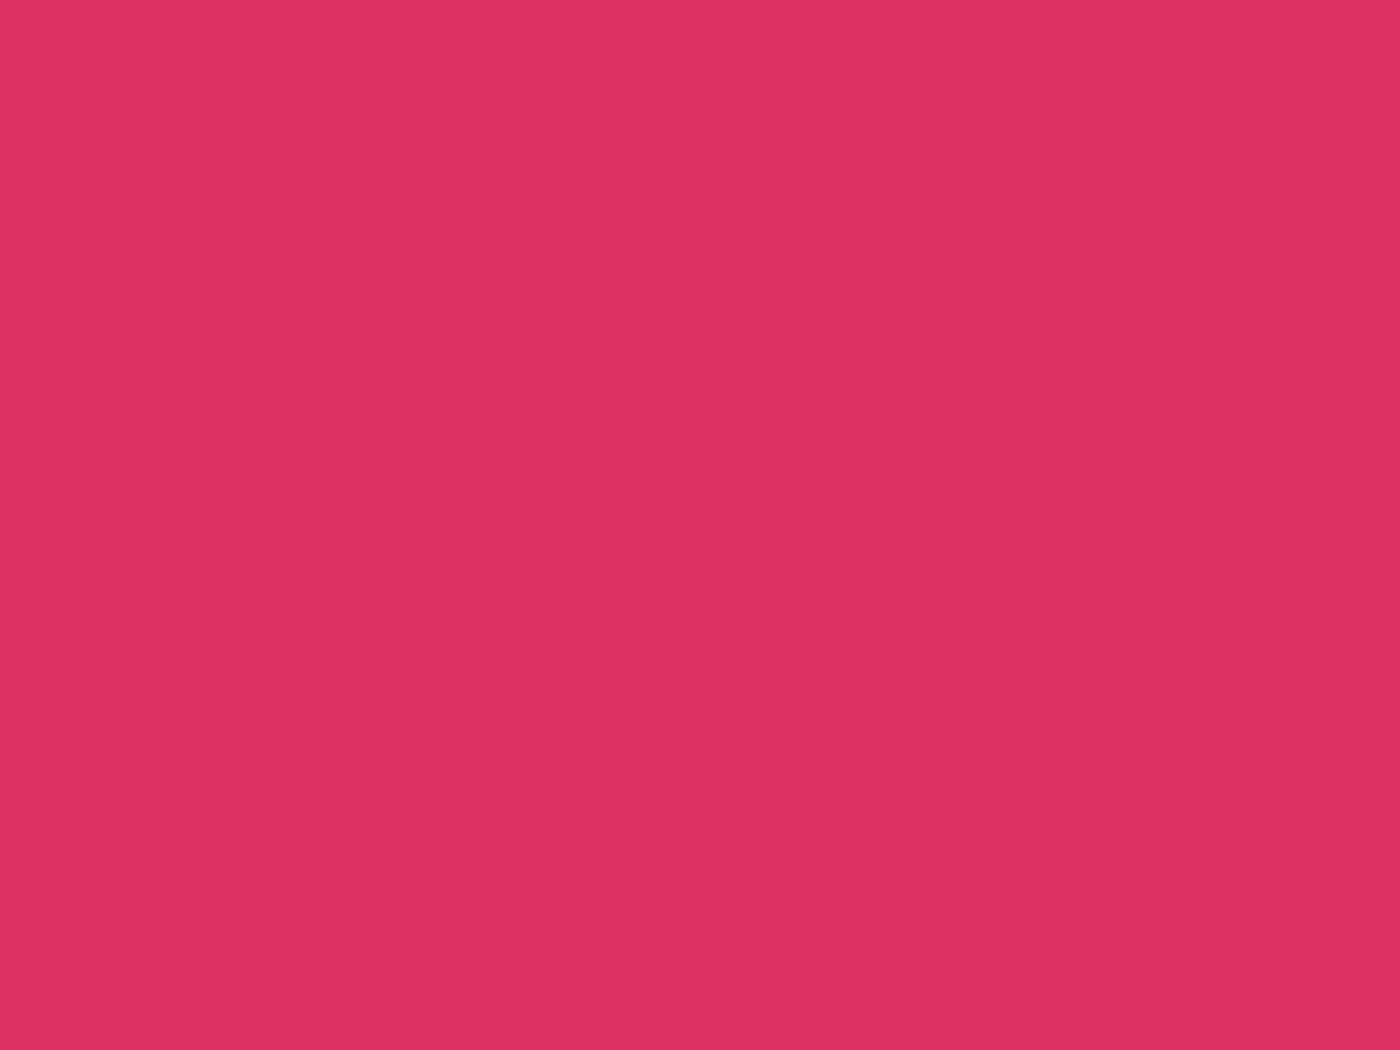 1400x1050 Cherry Solid Color Background